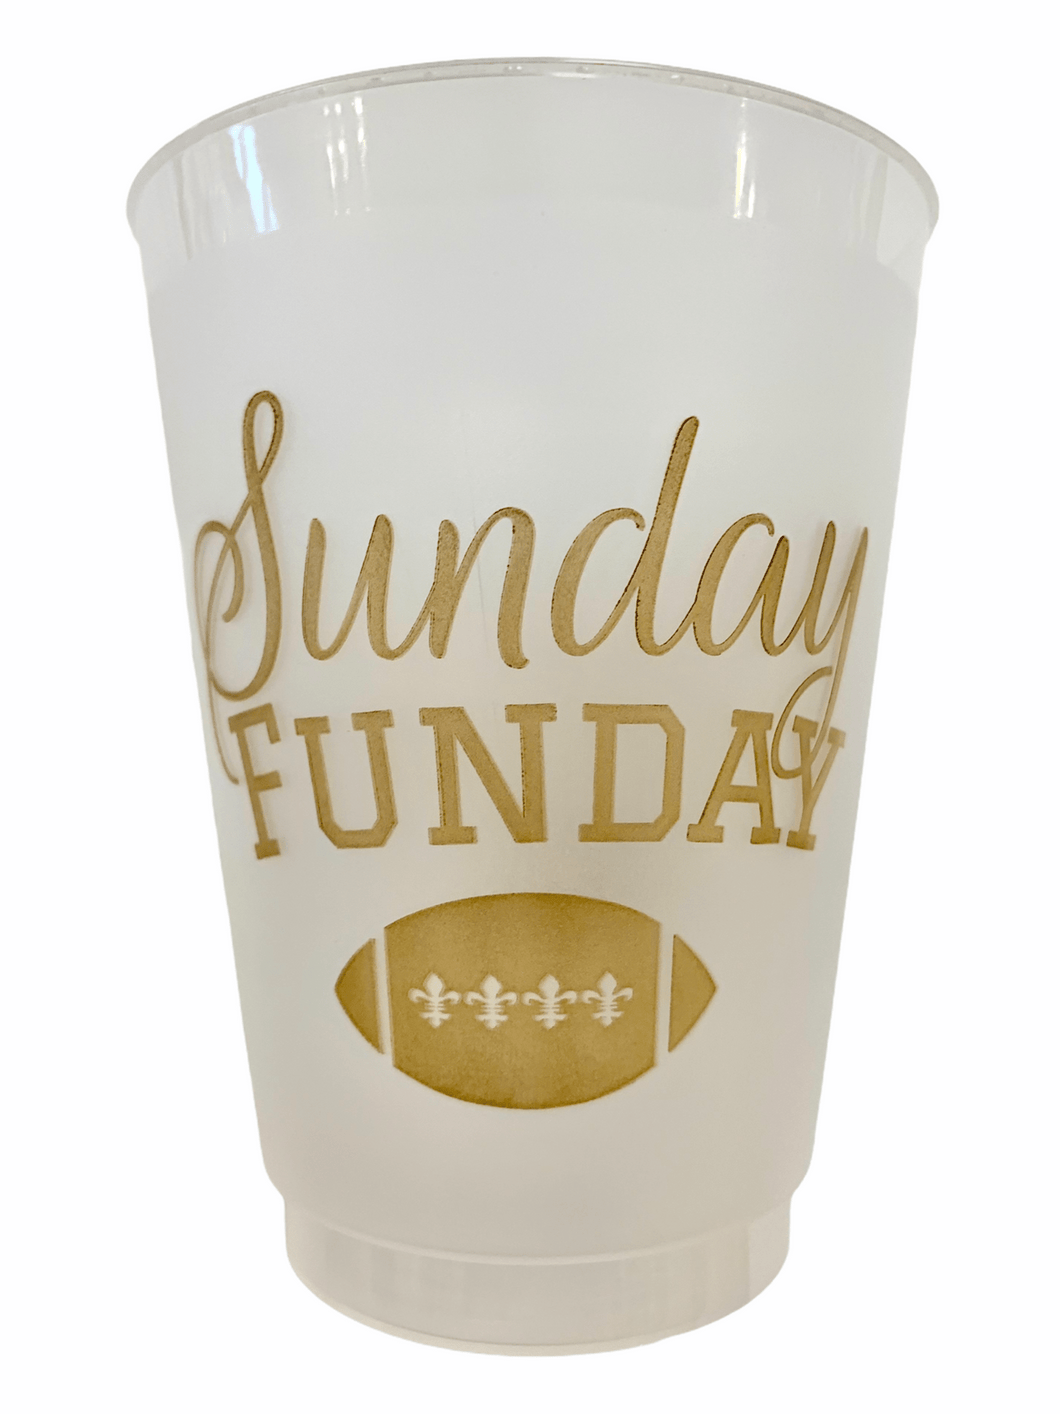 Sunday Funday Cups - MSP Miss Smarty Pants